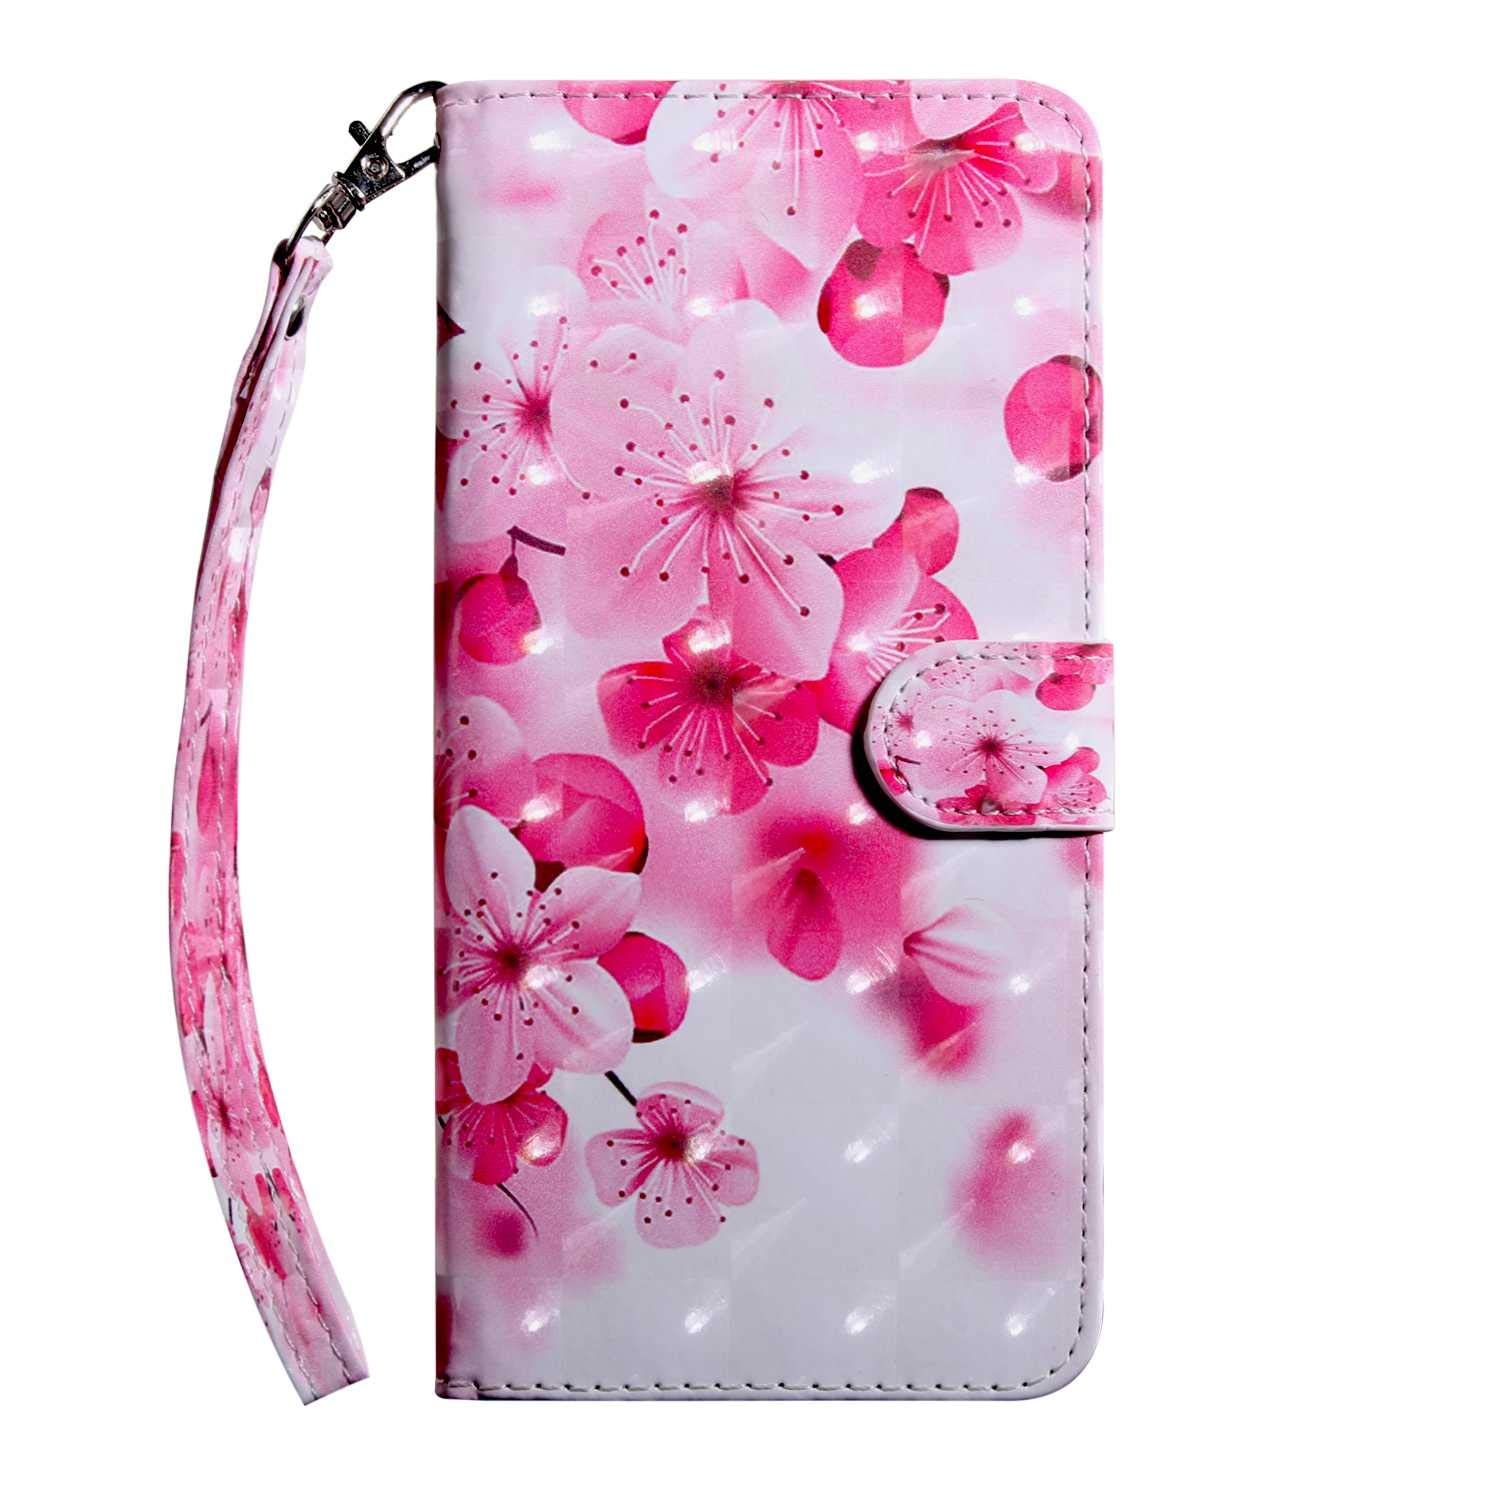 Xiaomi MI 5X Case CUSKING Magnetic Wallet Case for Xiaomi MI 5X [Card Slot] [Hand Strap] [Flip Case] [Easy to Clean] Full Body Proective Case - Cherry Blossoms